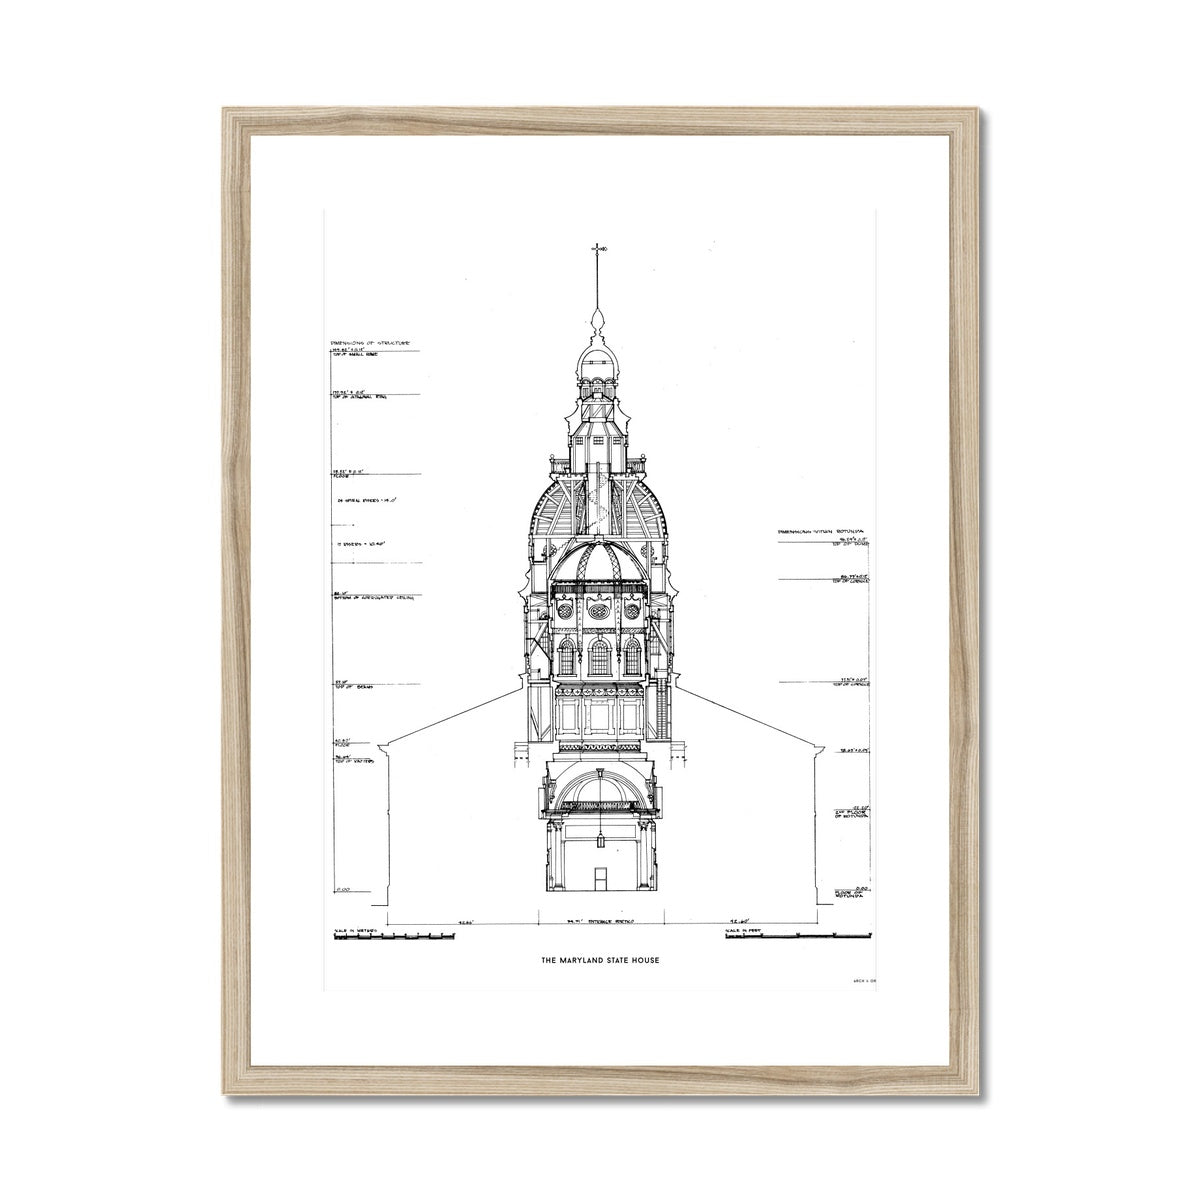 The Maryland State House - Northwest Elevation Cross Section - White -  Framed & Mounted Print